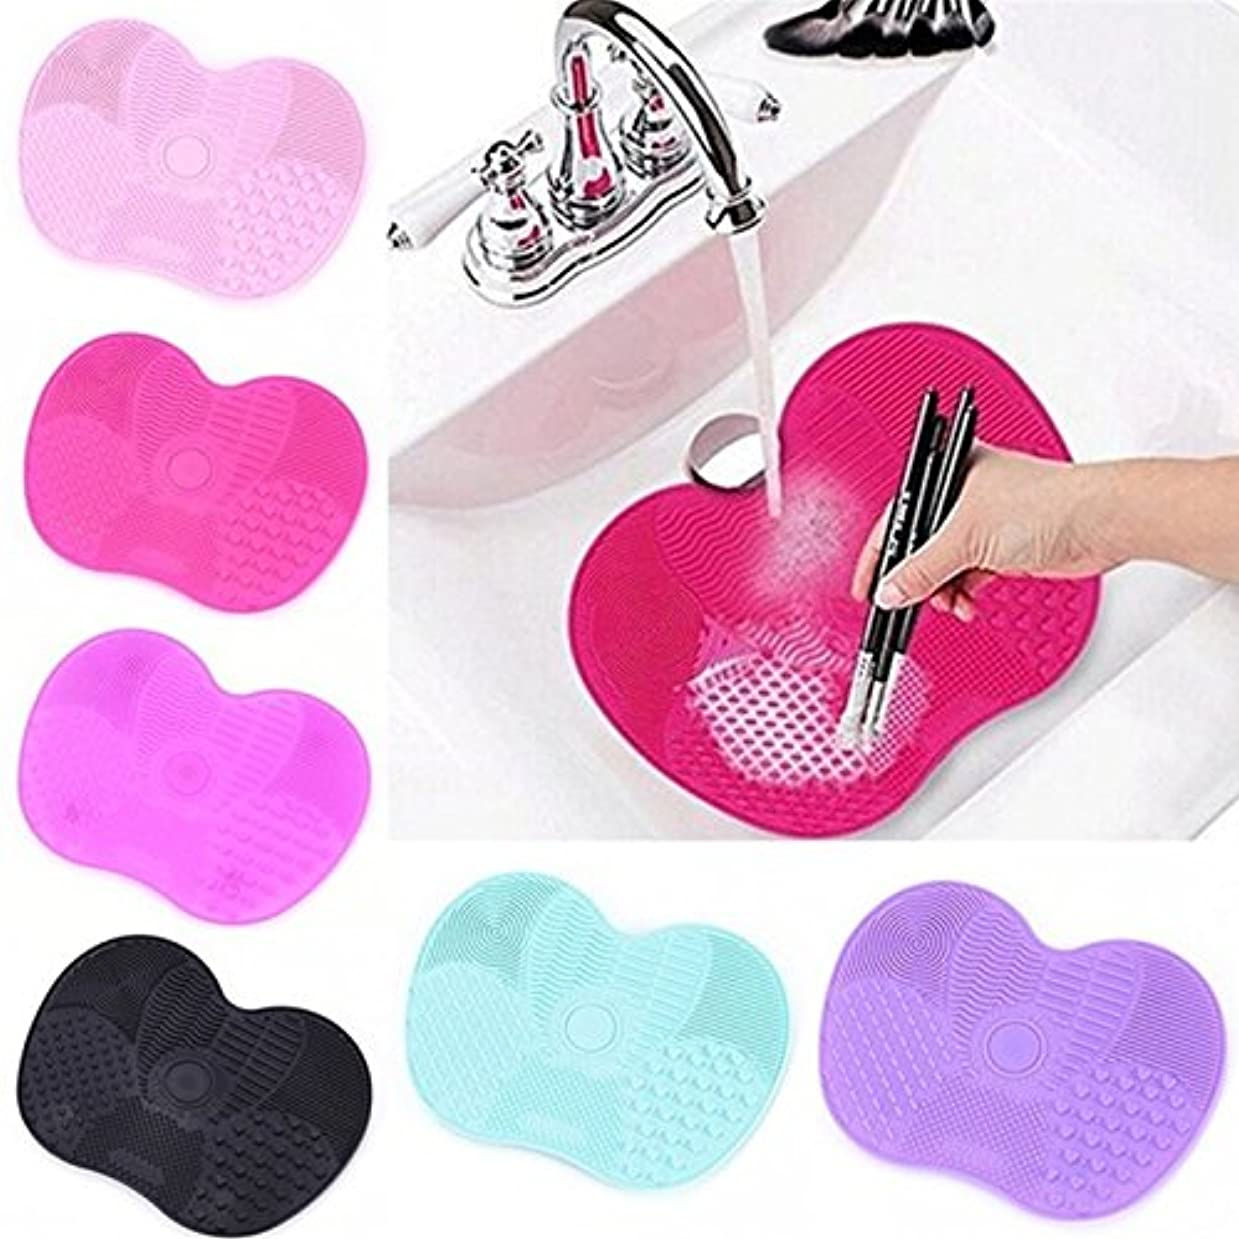 メロディアス犯罪苦行Makeup Brush cleaner Silicone Mat Make Up Washing Brushes Cosmetic Gel Board Cleaning Pad Cleaner Scrubber Tools...